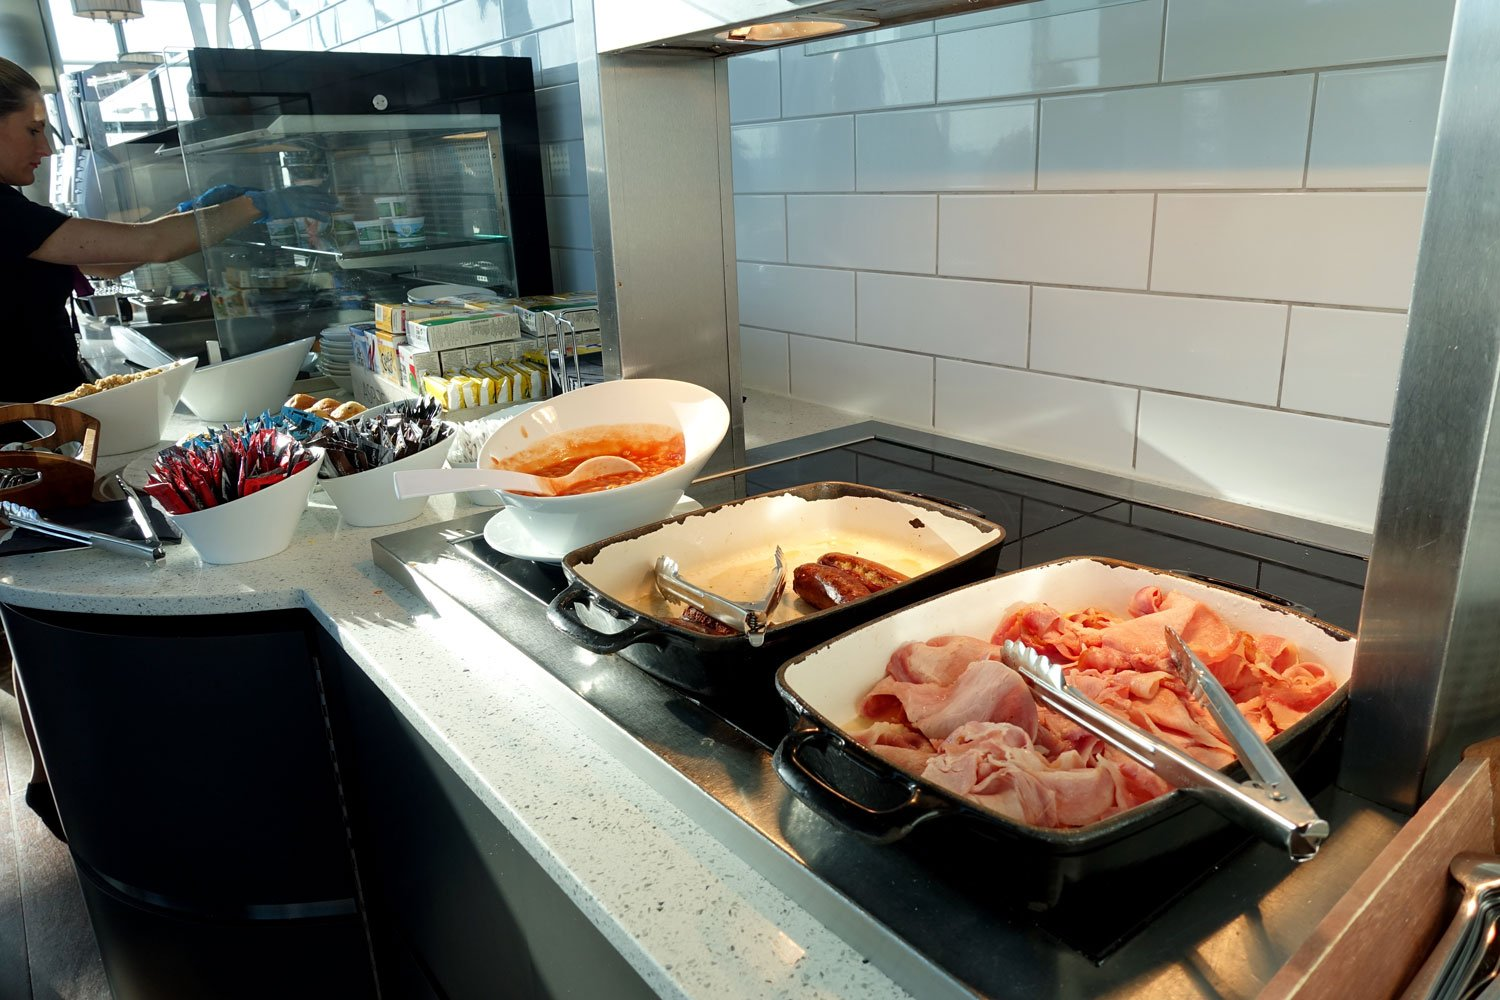 heathrow priority pass lounge - aspire lounge and spa hot food